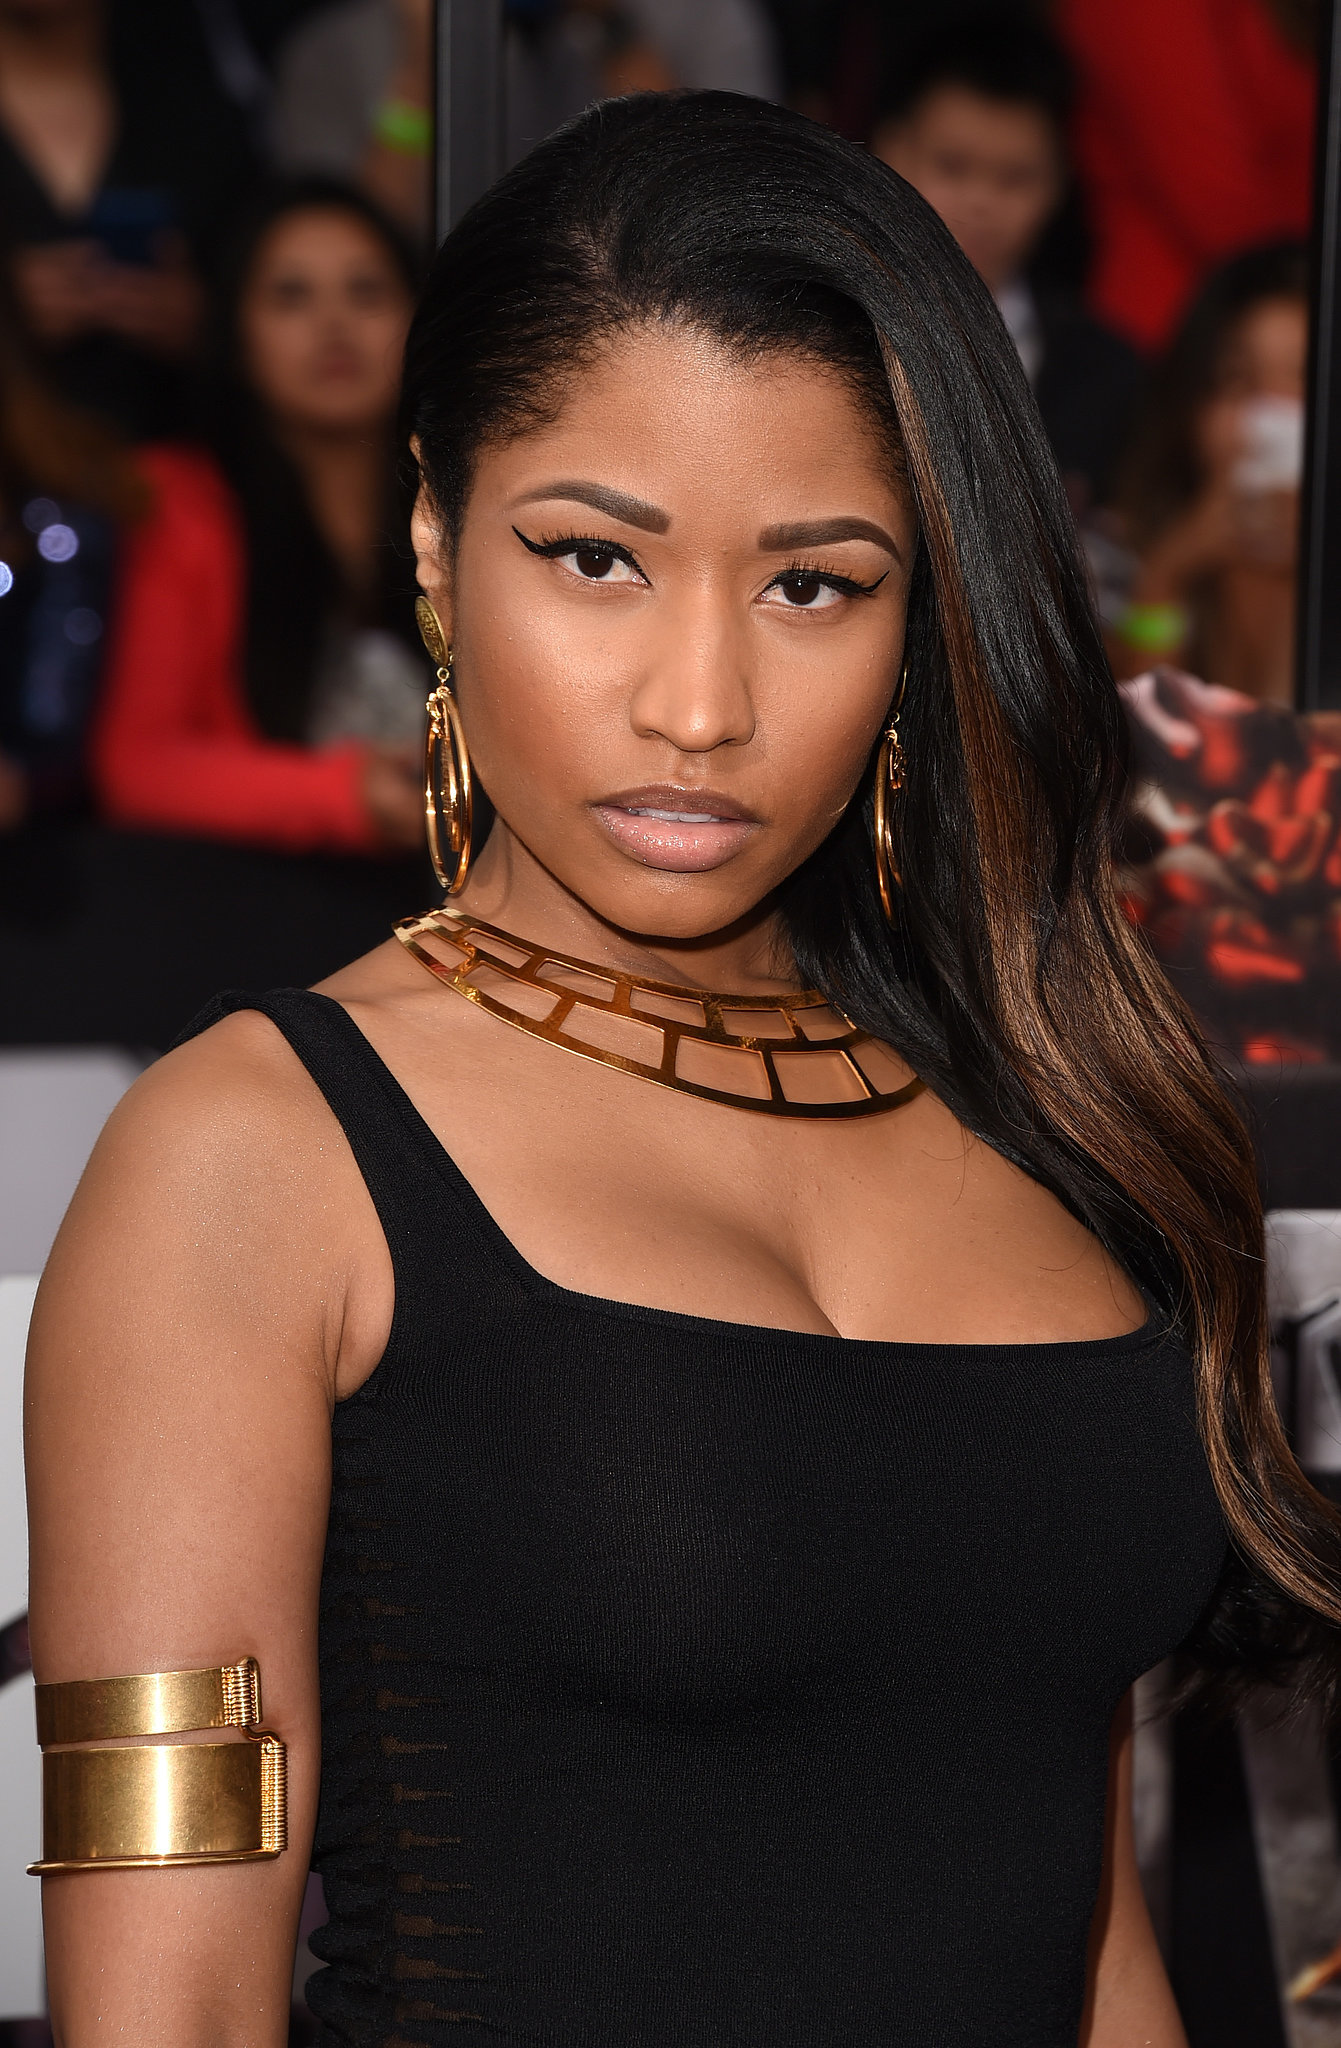 Nicki Minaj Releases No Flex Zone Remix